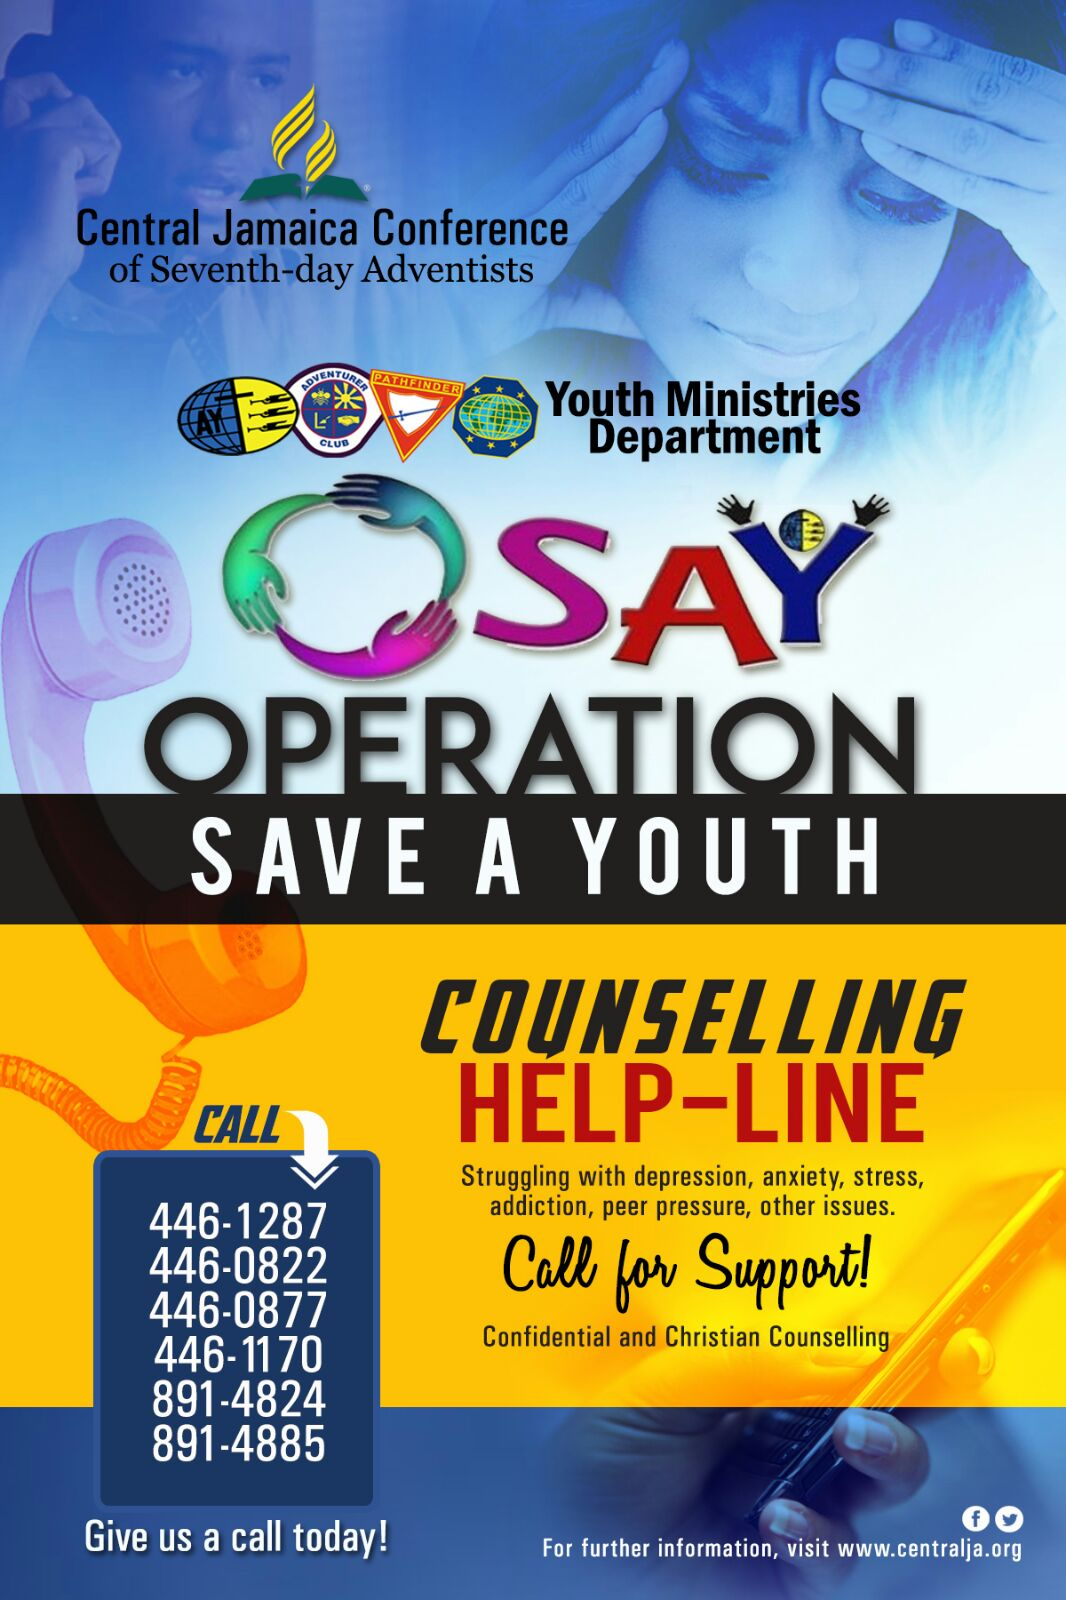 OSAY Helpline  Central Jamaica Conference of Seventhday Adventists